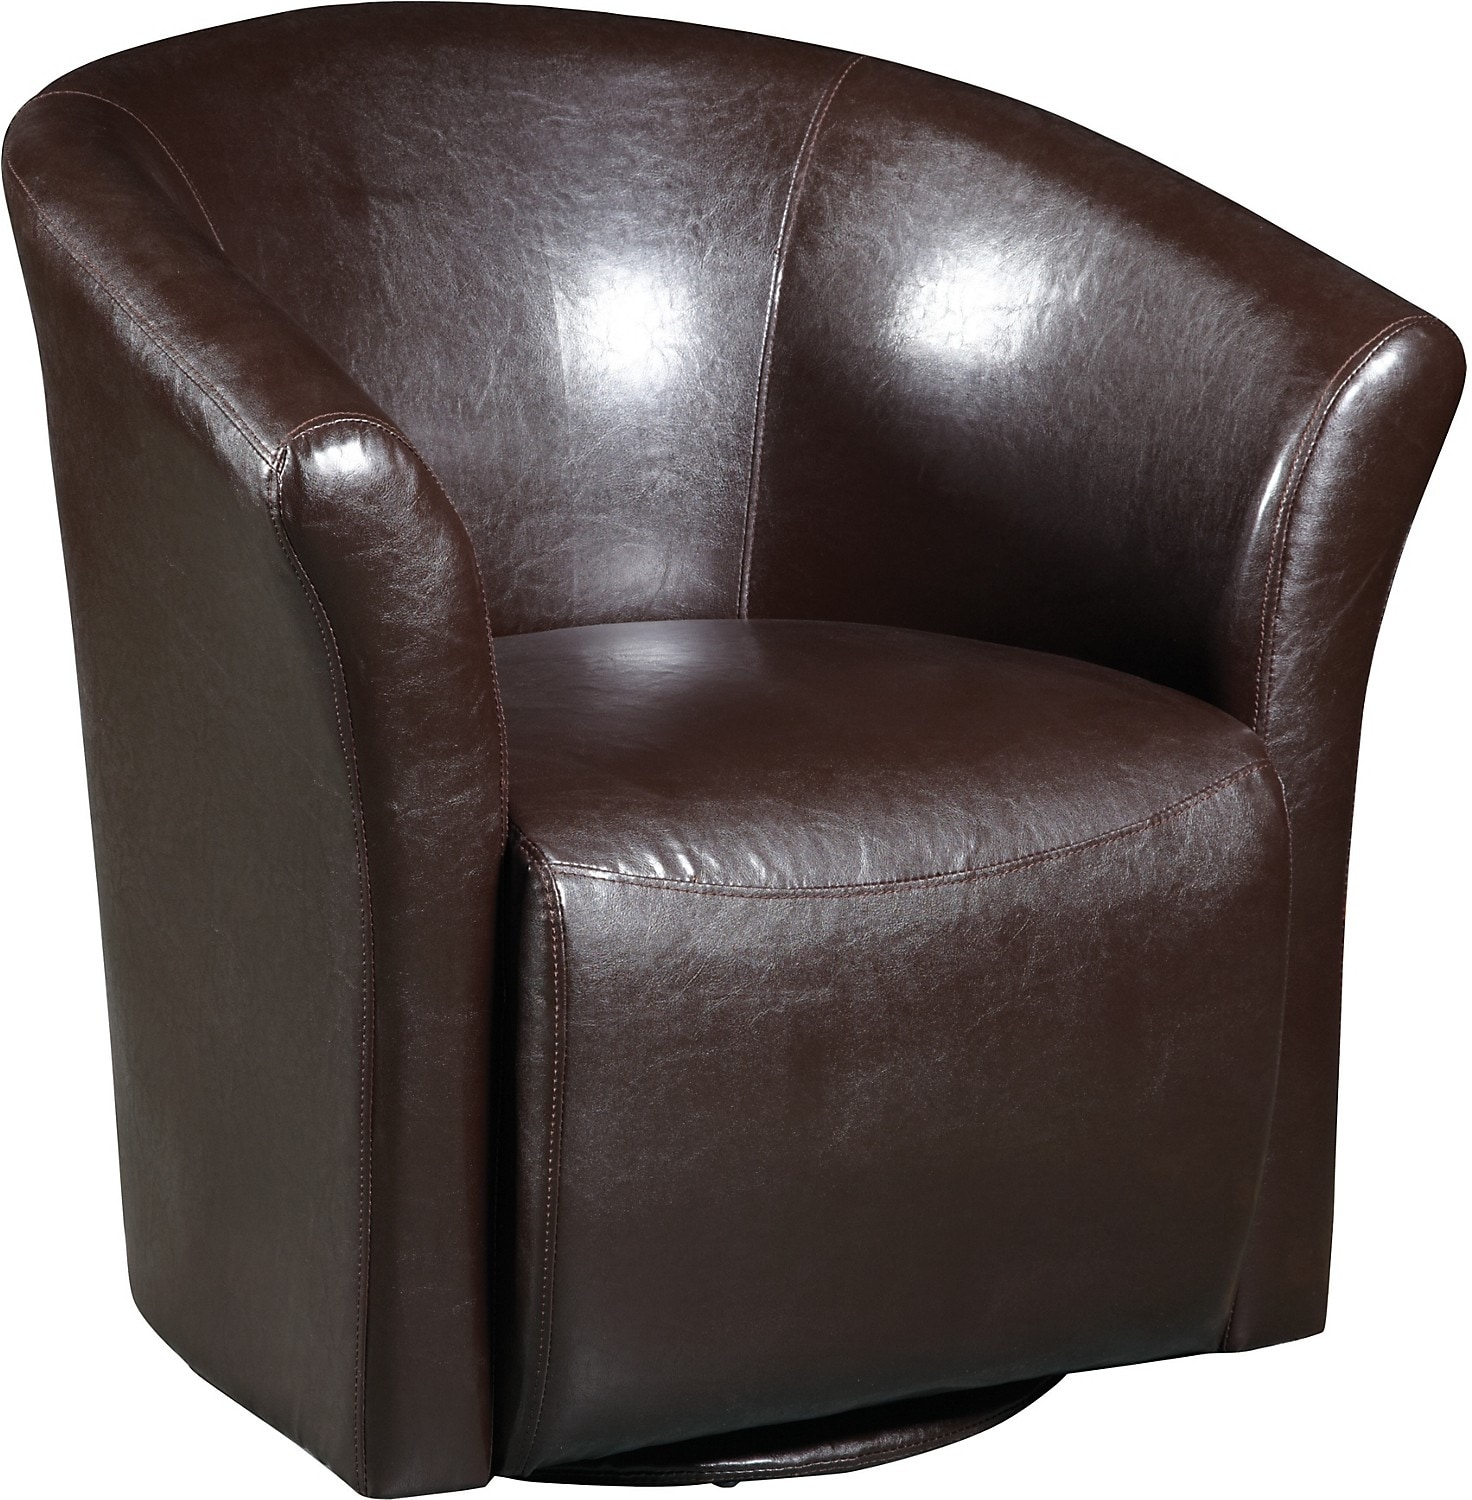 Brown swivel accent chair the brick - Swivel chair living room furniture ...